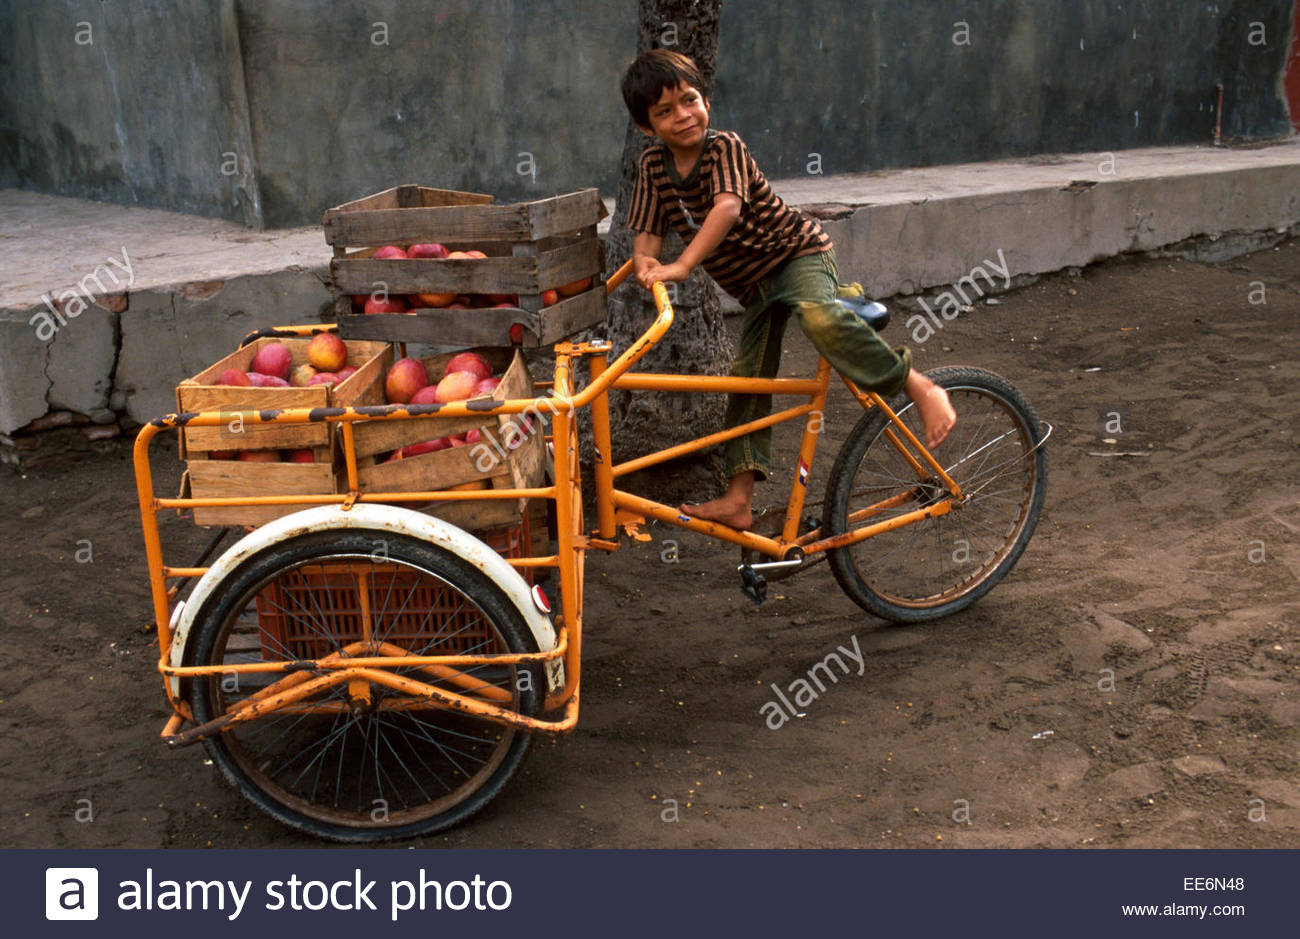 Mexcaltitan, Child on a carrier-tricycle loaded with mangos - Stock Image